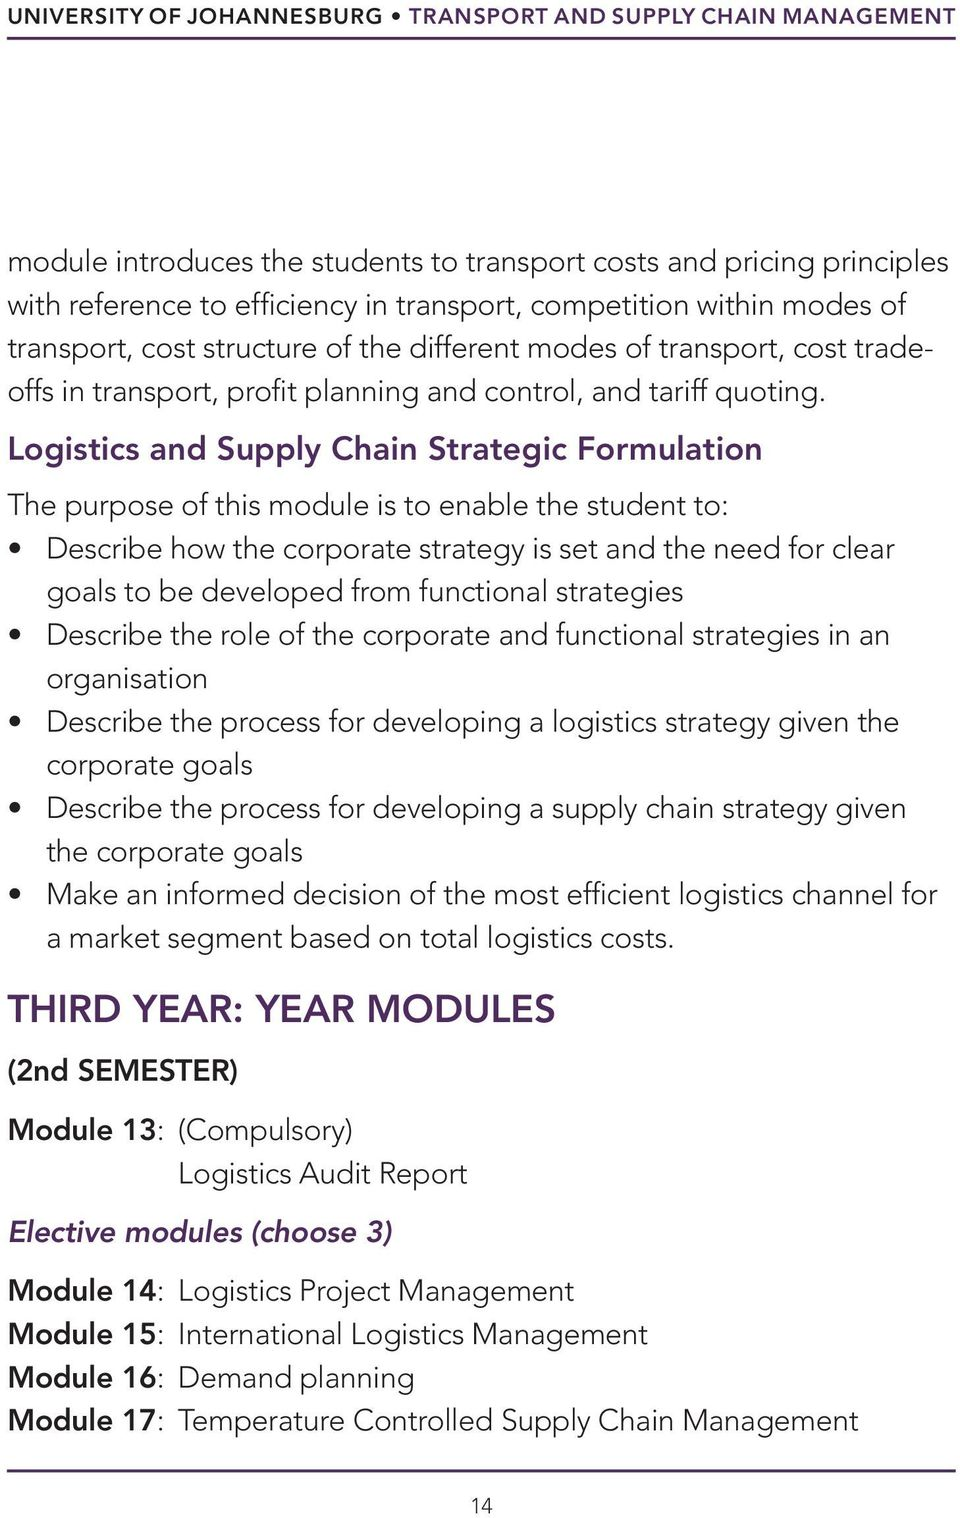 Logistics and Supply Chain Strategic Formulation The purpose of this module is to enable the student to: Describe how the corporate strategy is set and the need for clear goals to be developed from